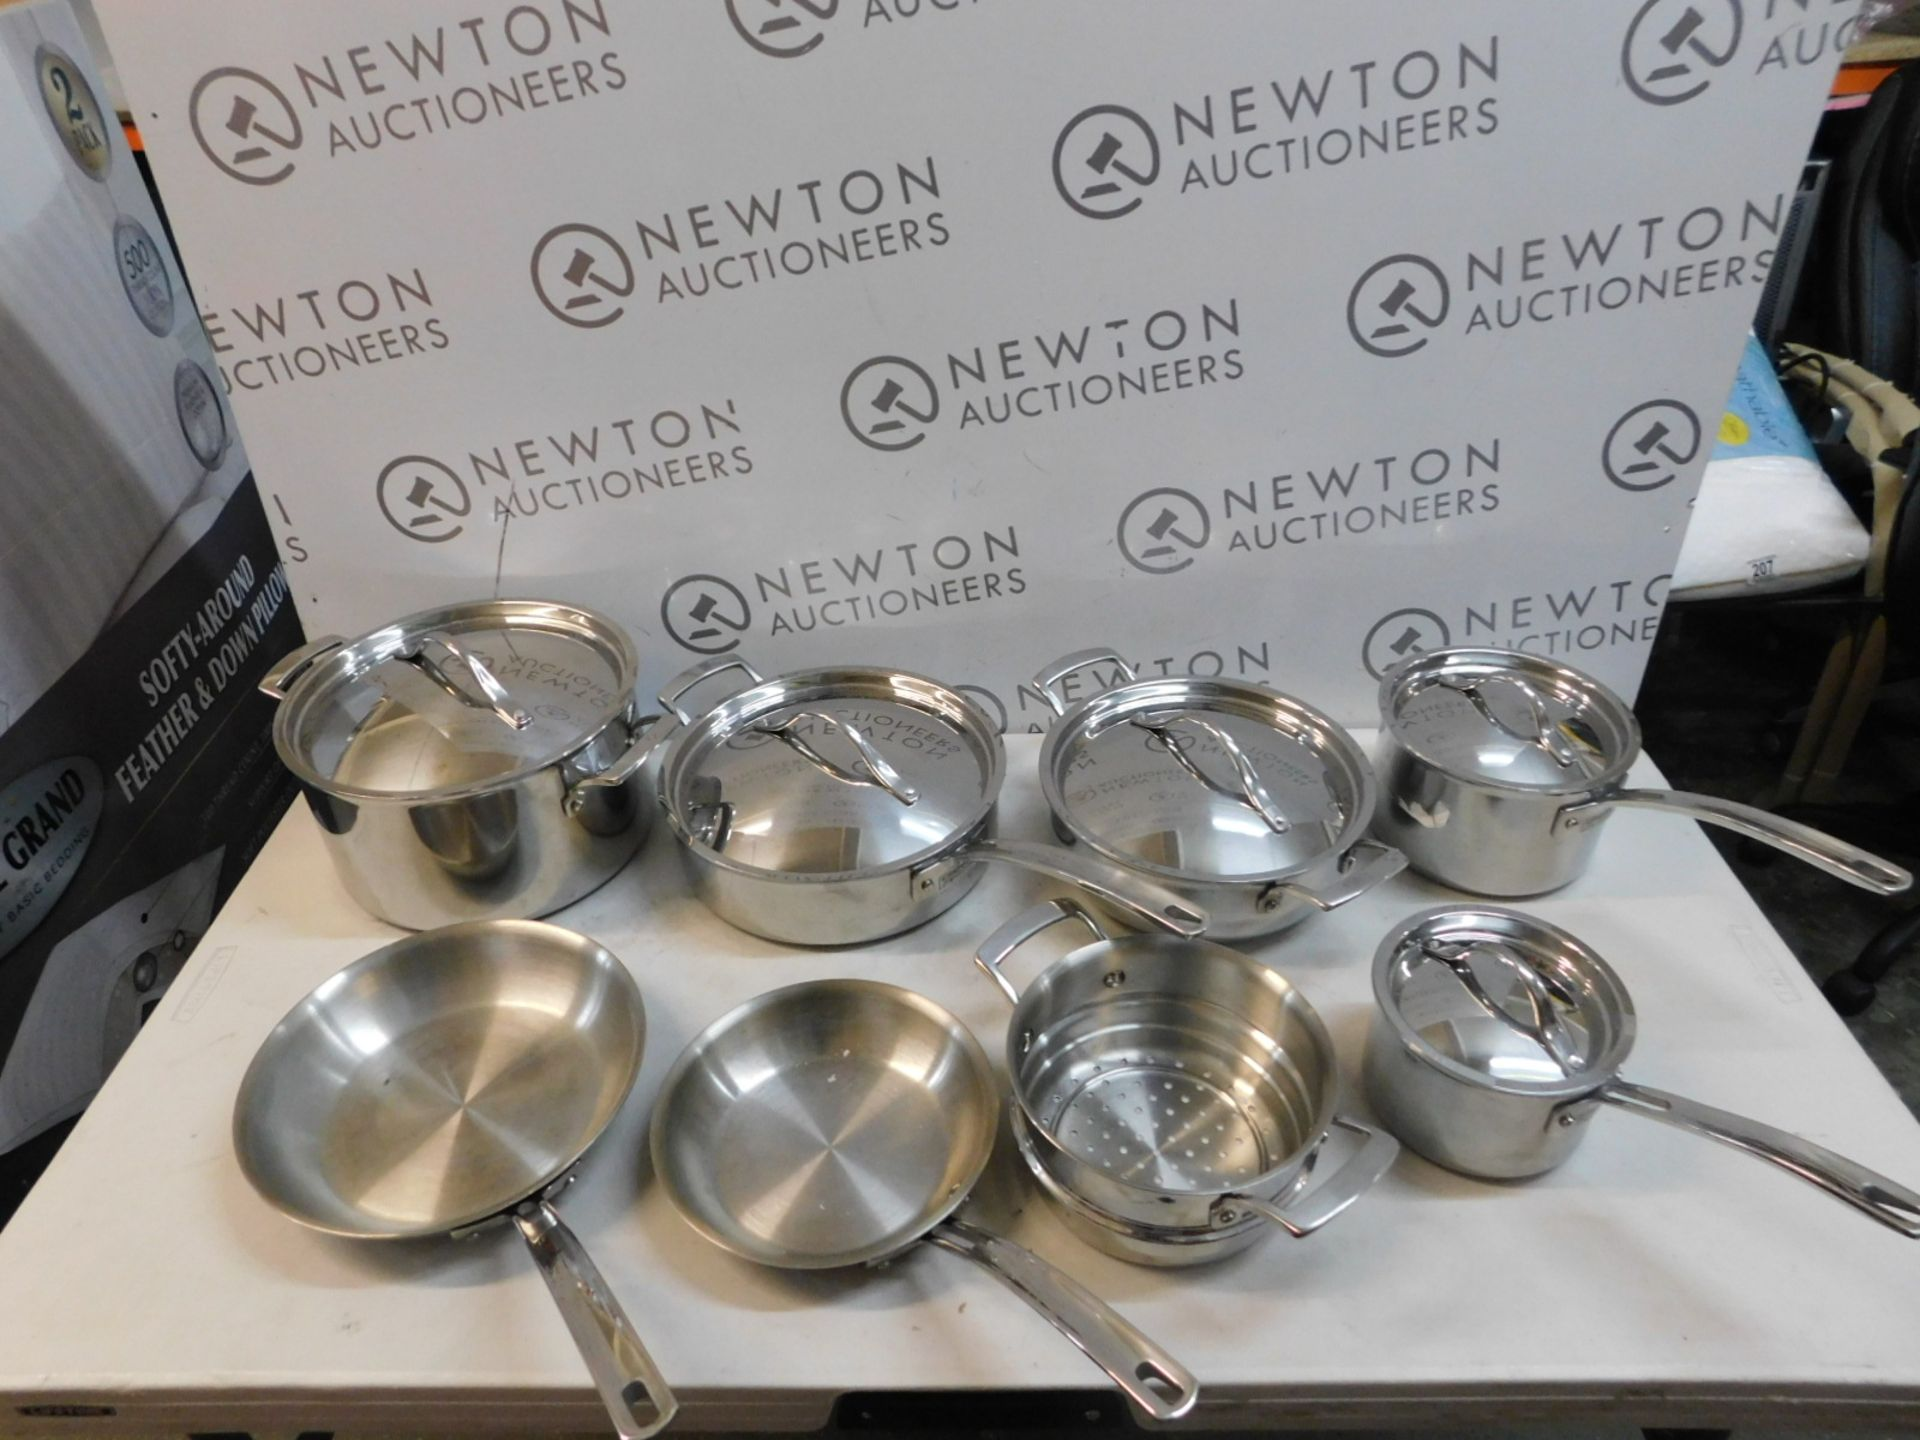 1 KIRKLAND SIGNATURE 10 PIECE (APPROX) 5-PLY CLAD STAINLESS STEEL COOKWARE SET RRP £249.99